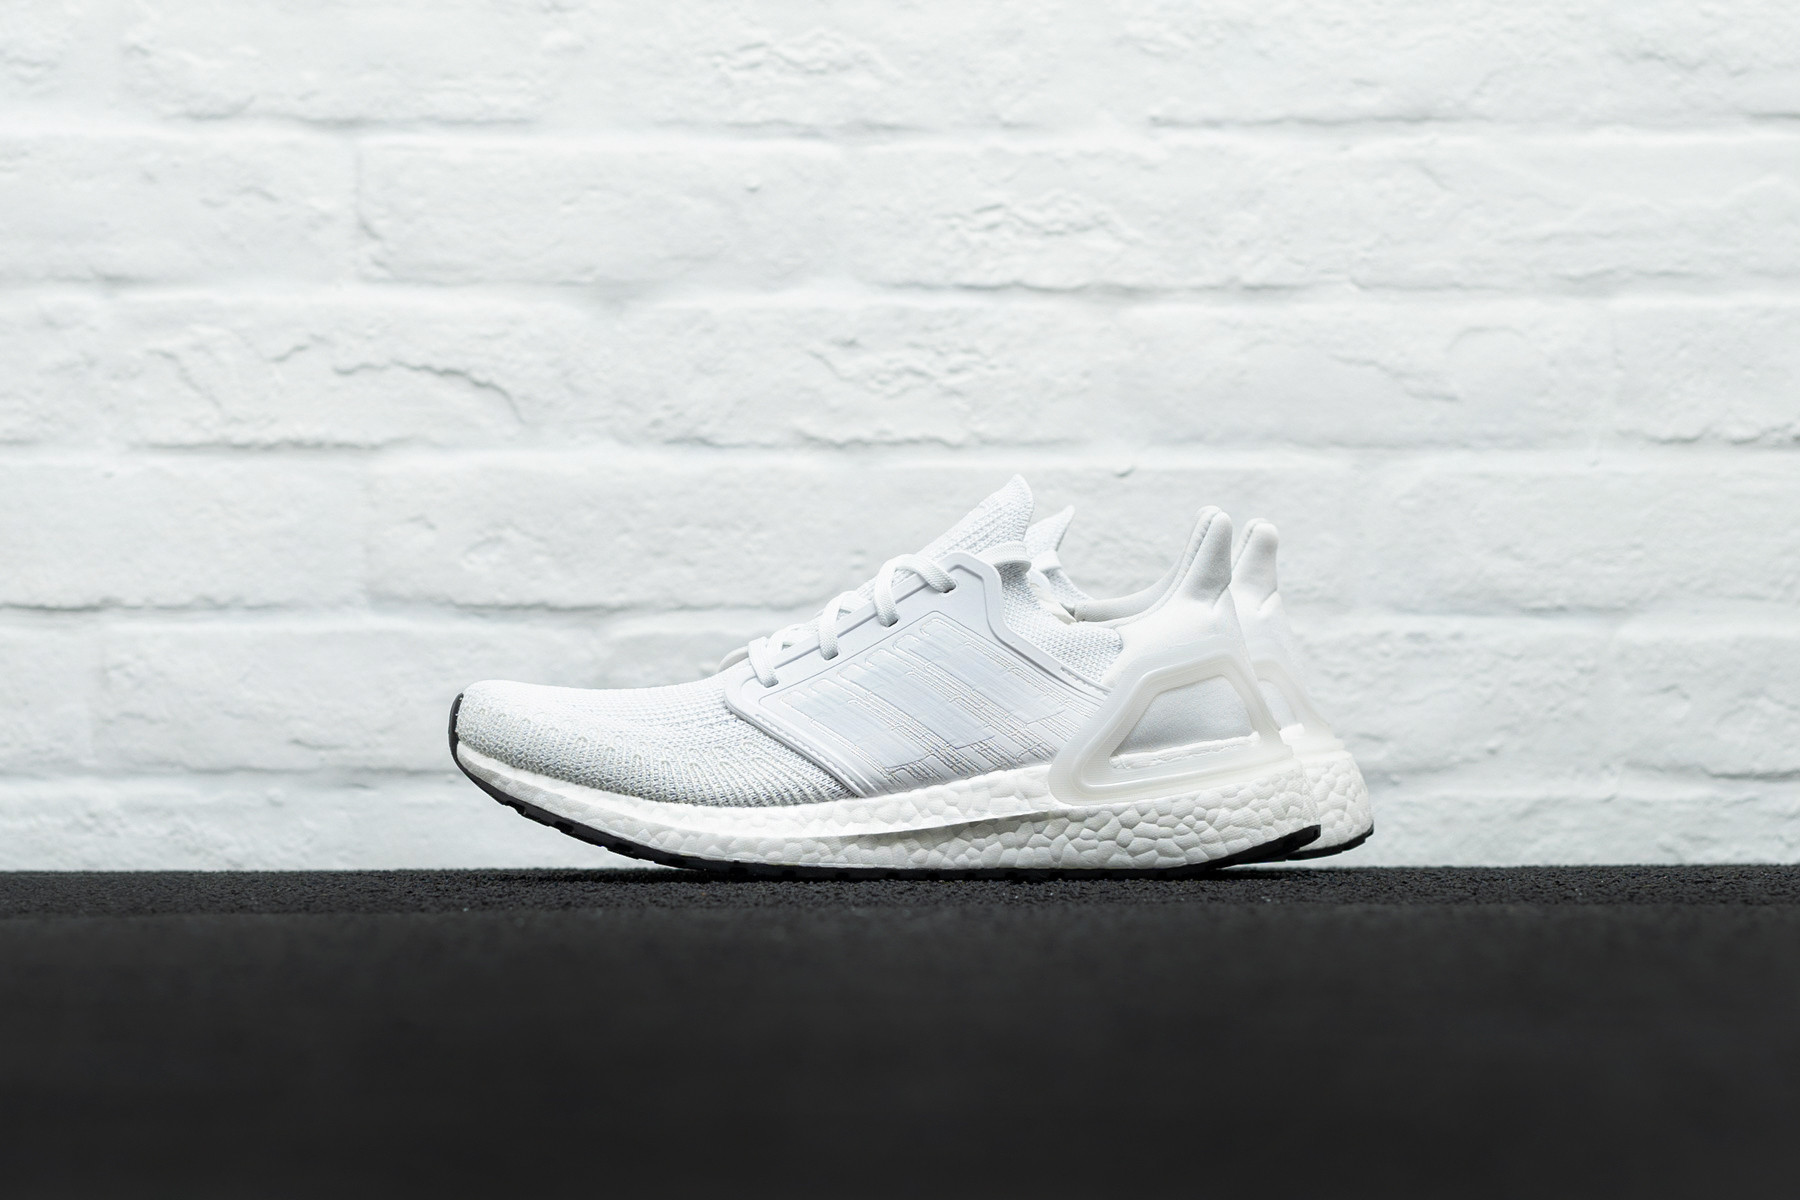 Adidas Ultraboost flyknit excellent condition